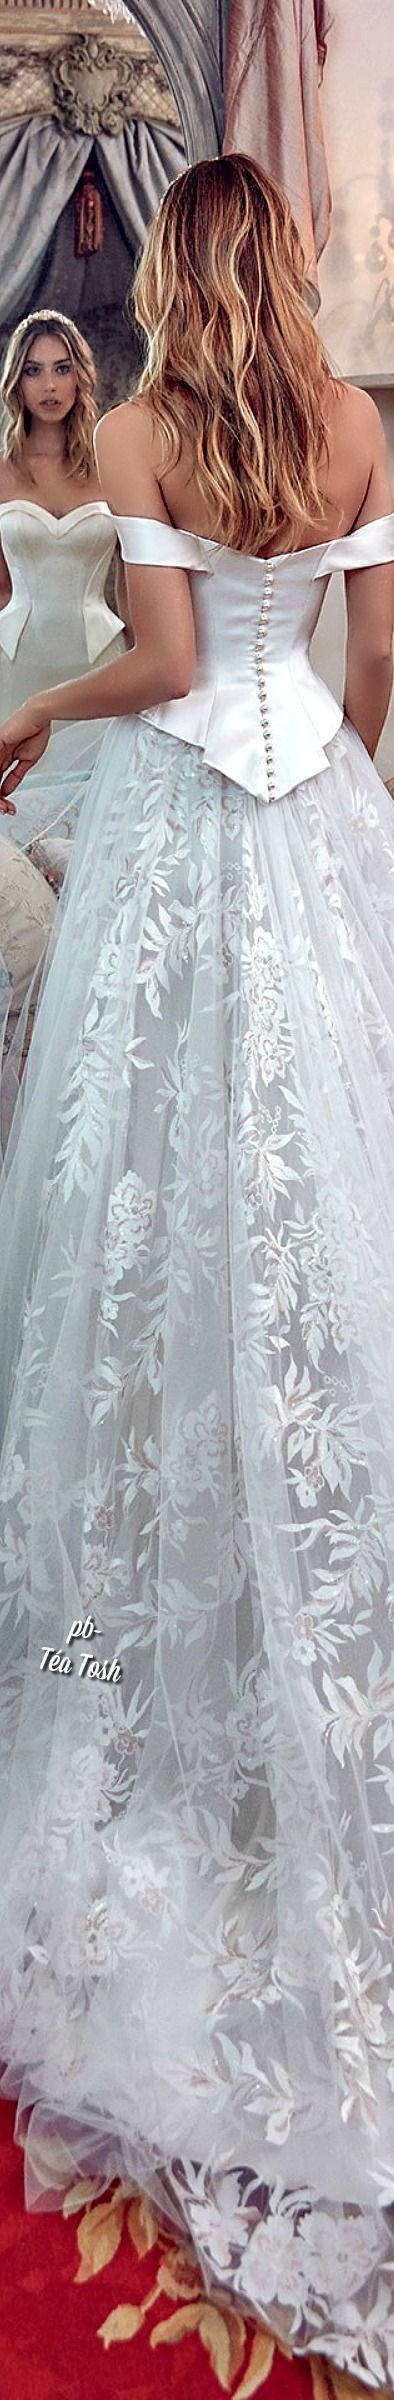 222 best Reflections images on Pinterest | Dream dress, Bridal gowns ...